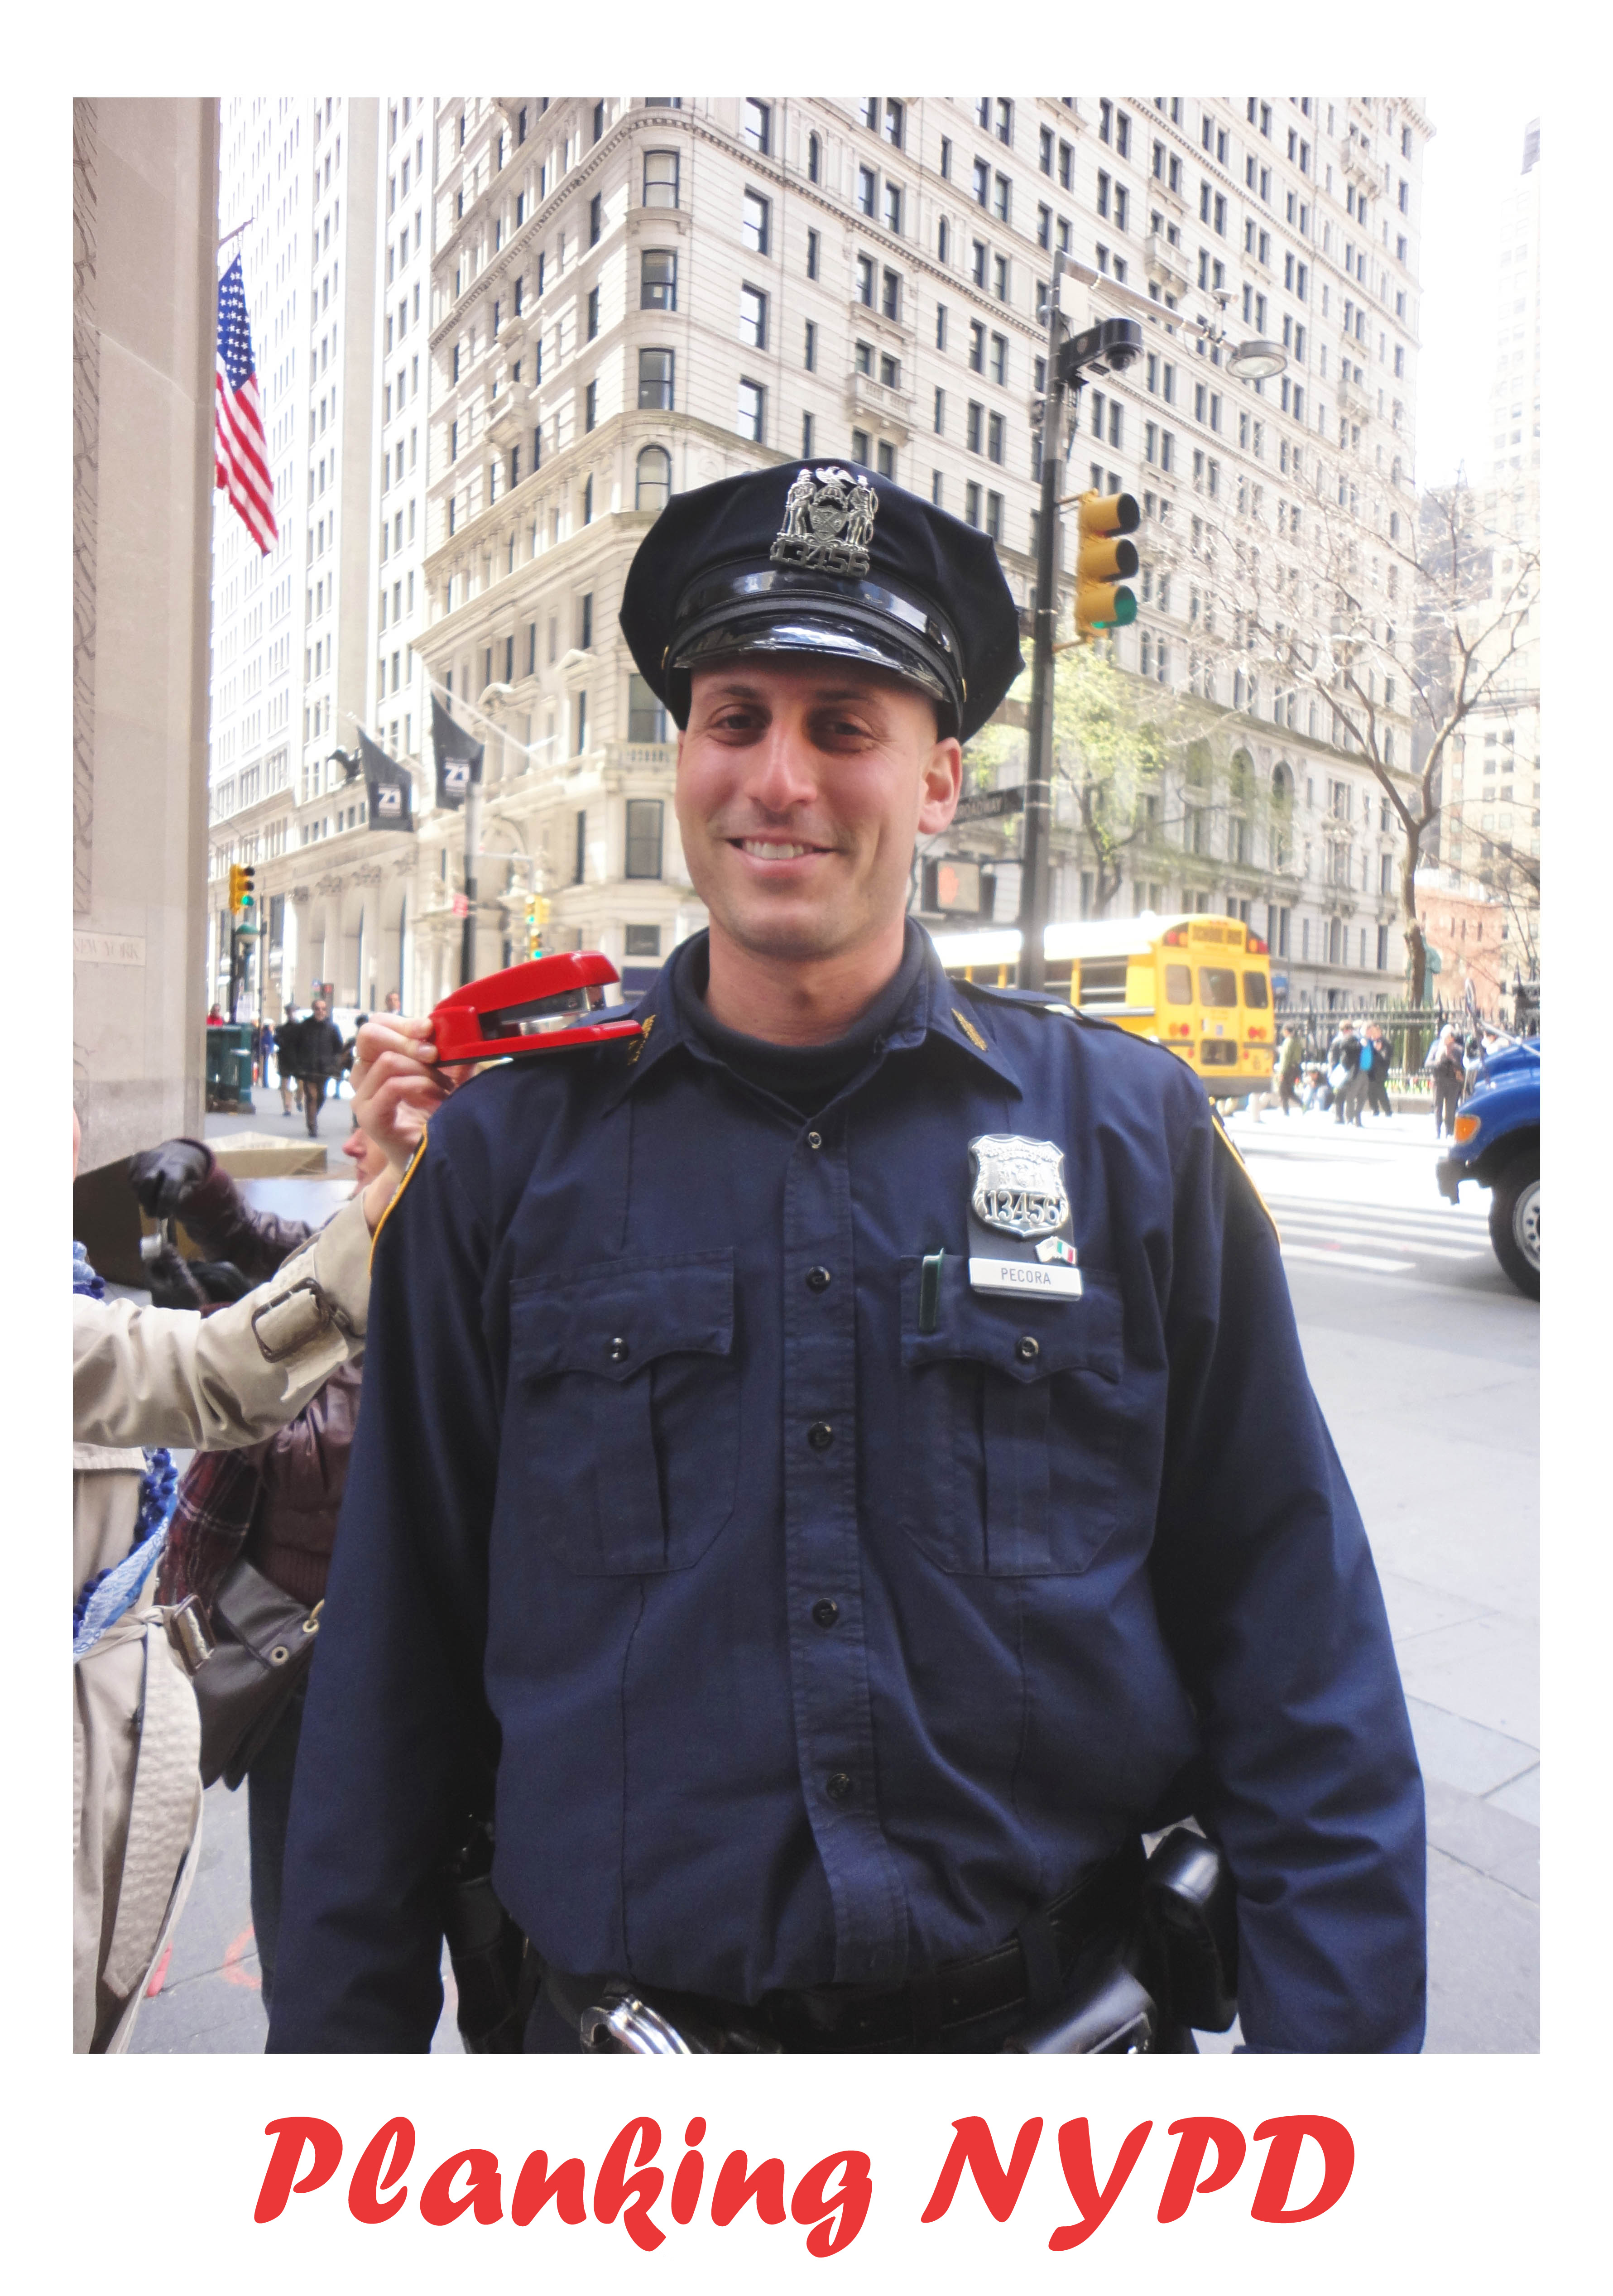 Shoplet Red Stapler Planking Police Officer NYPD The Planking Stapler has Moved!